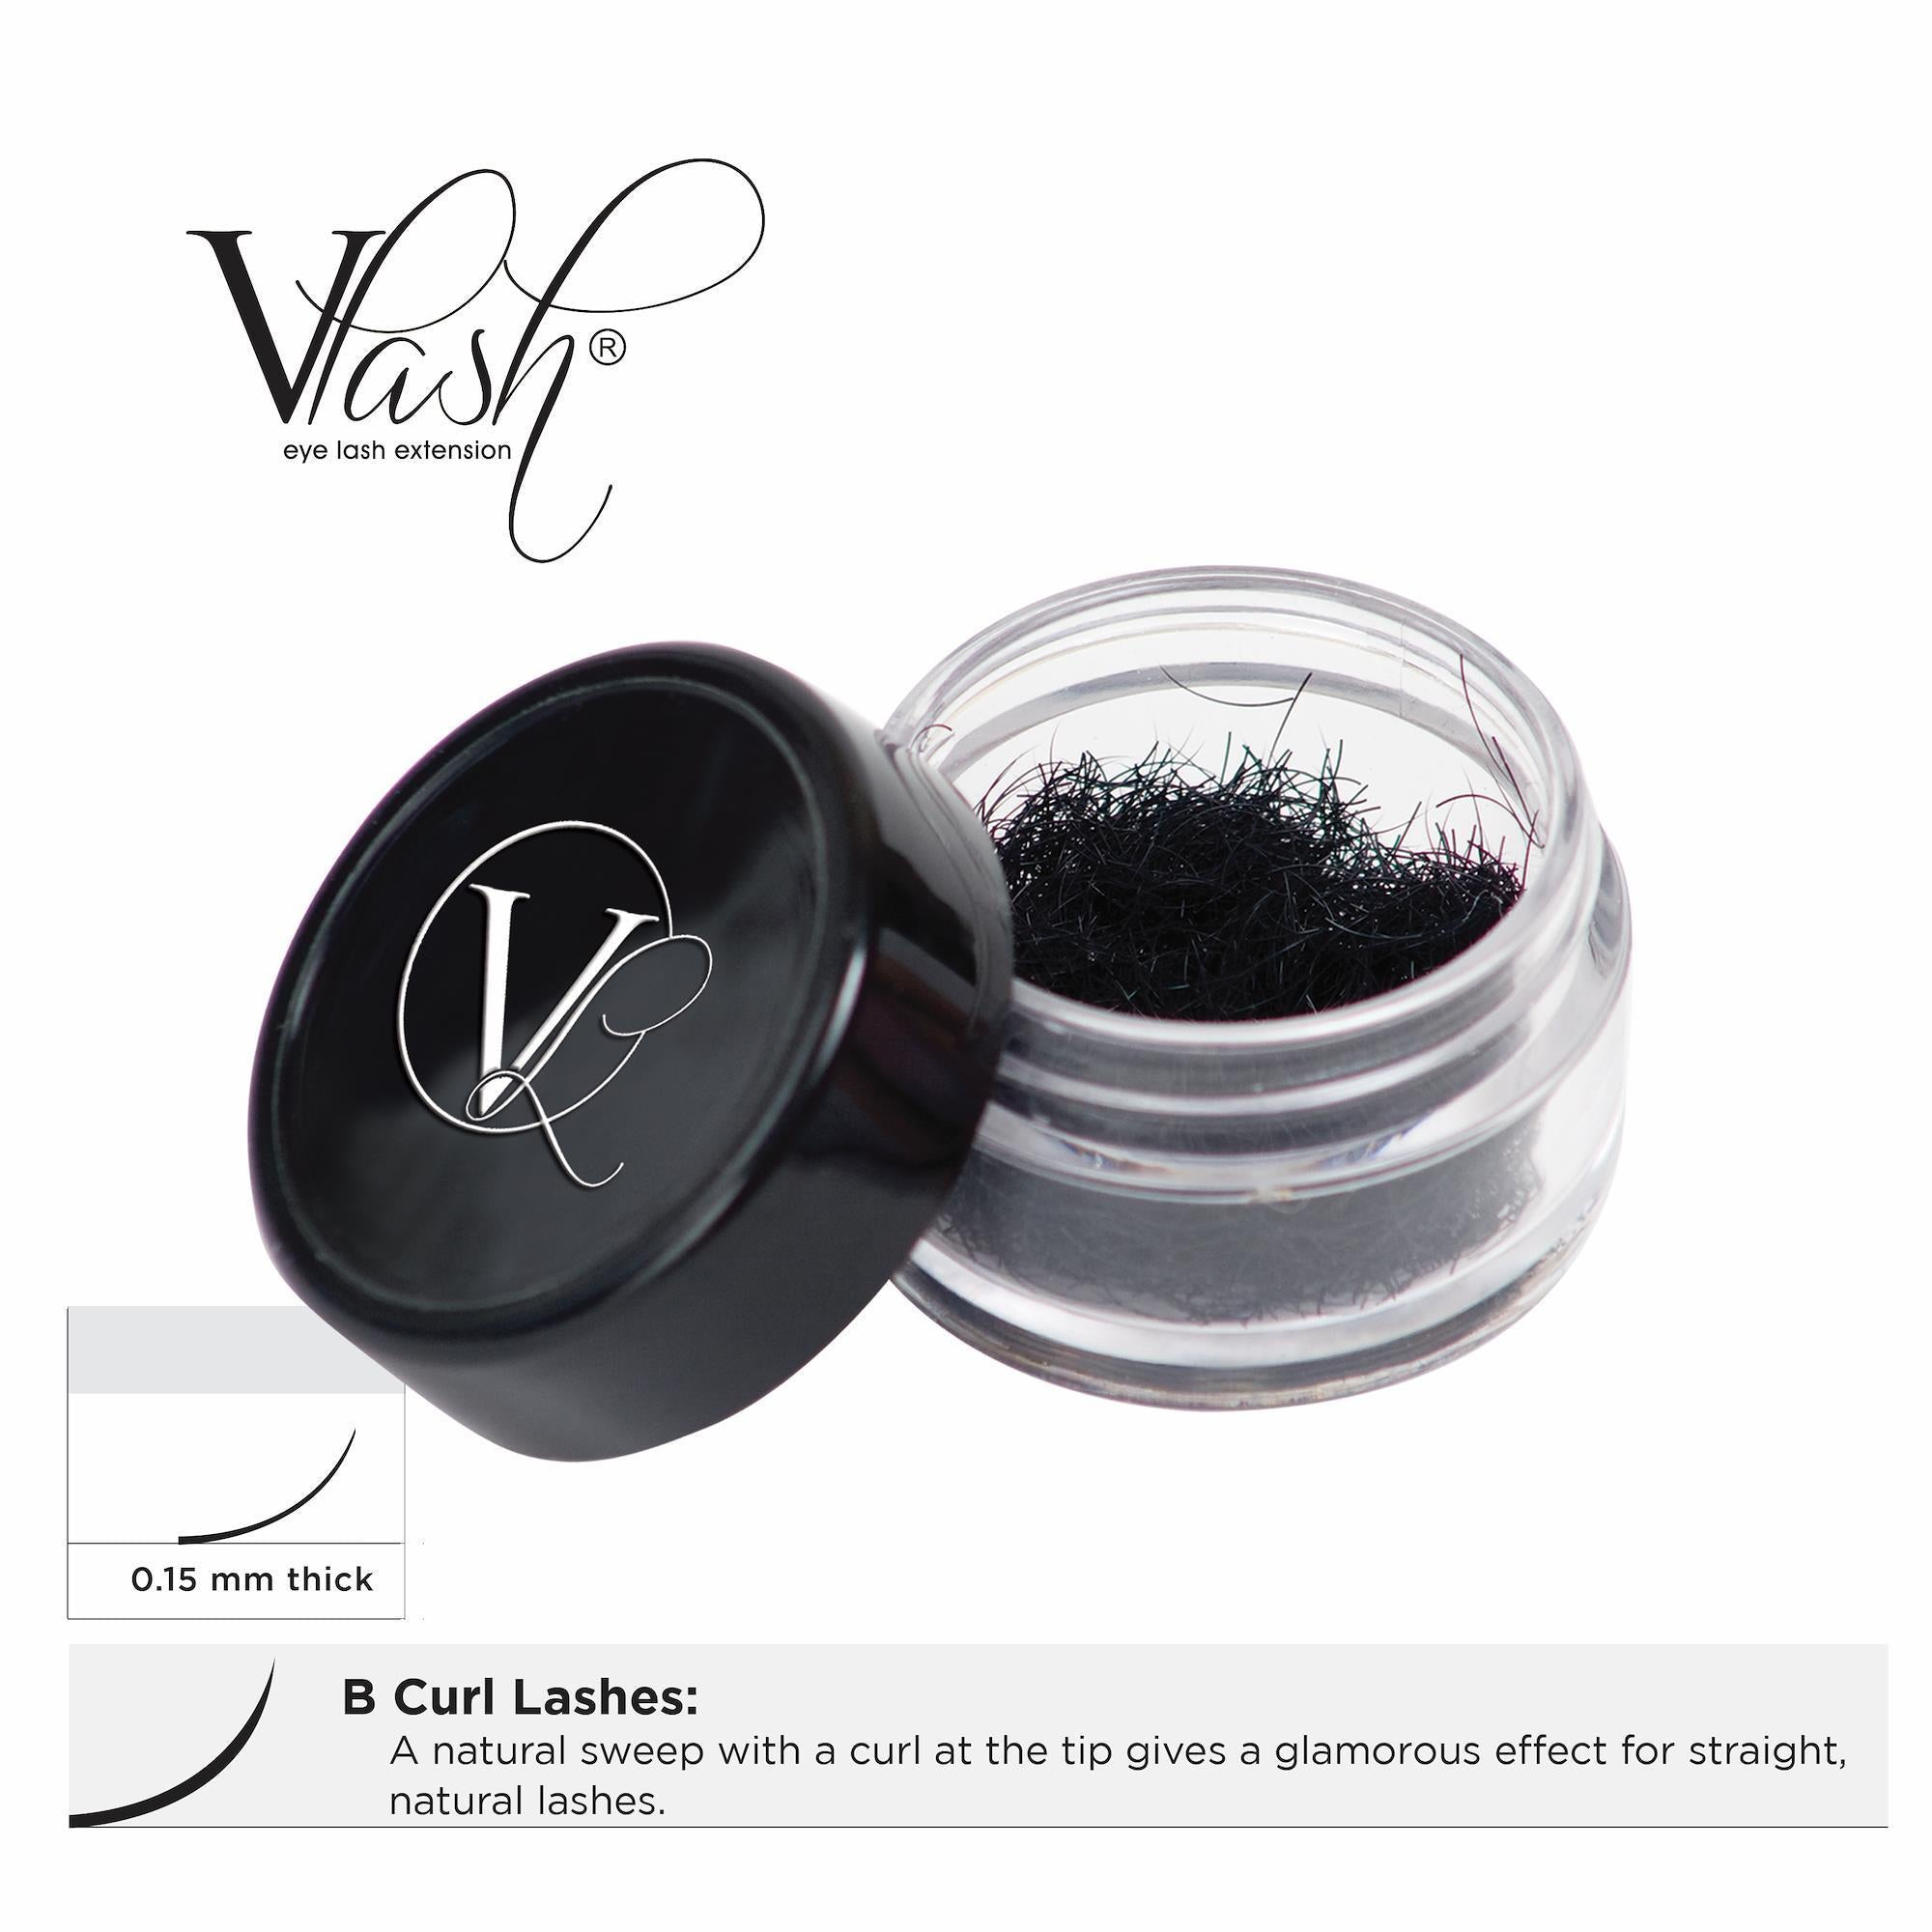 Lash Extensions, Strips, Acces 11mm VLash B Curl Jar Lashes / .15mm thick